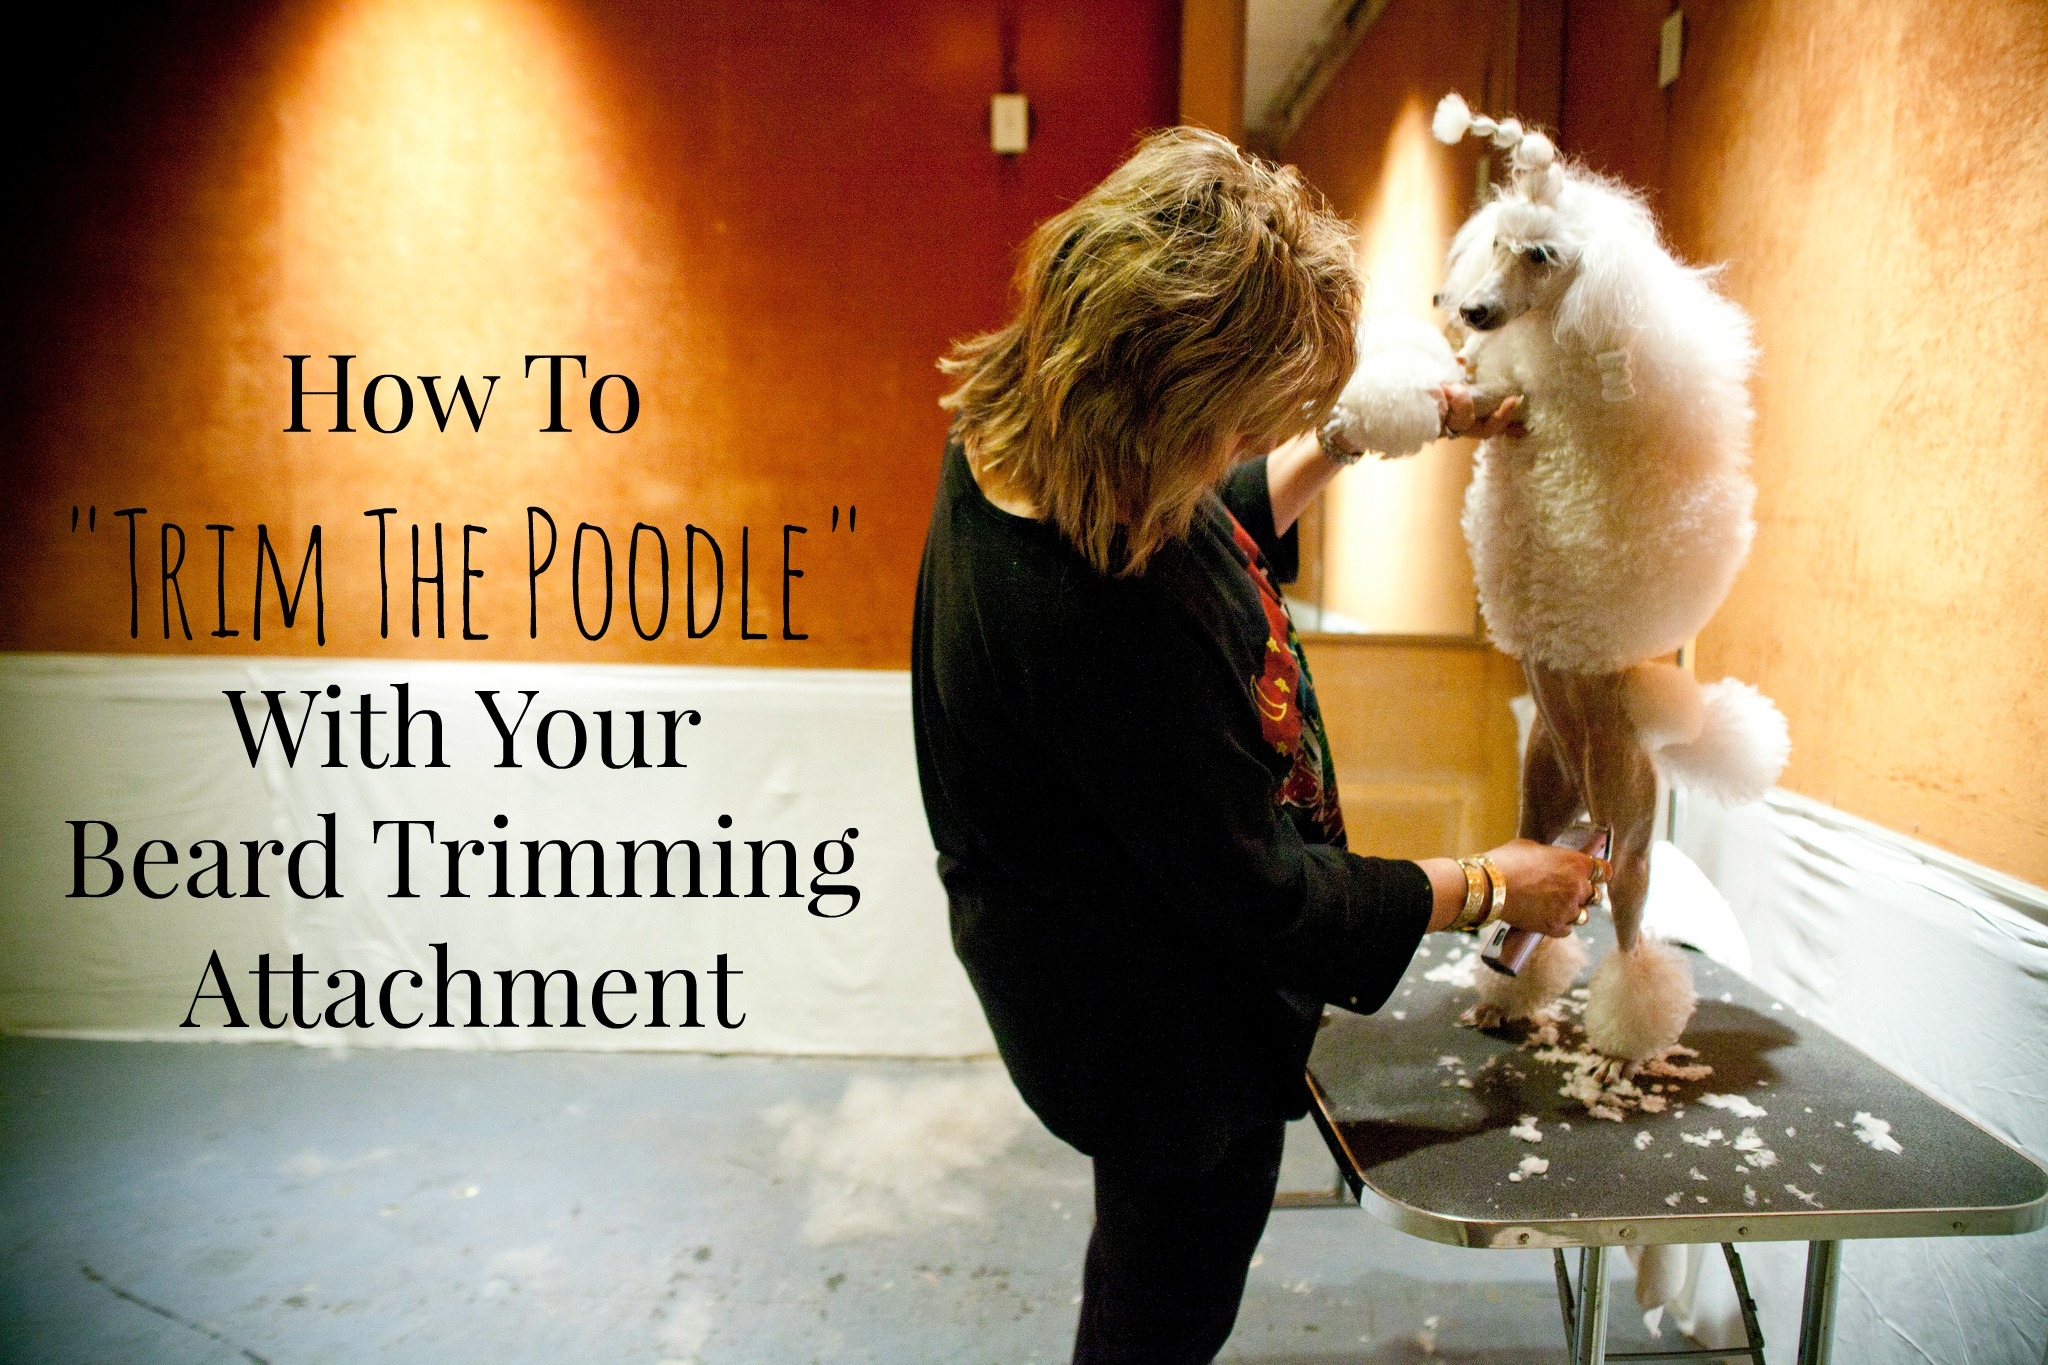 How To Trim The Poodle